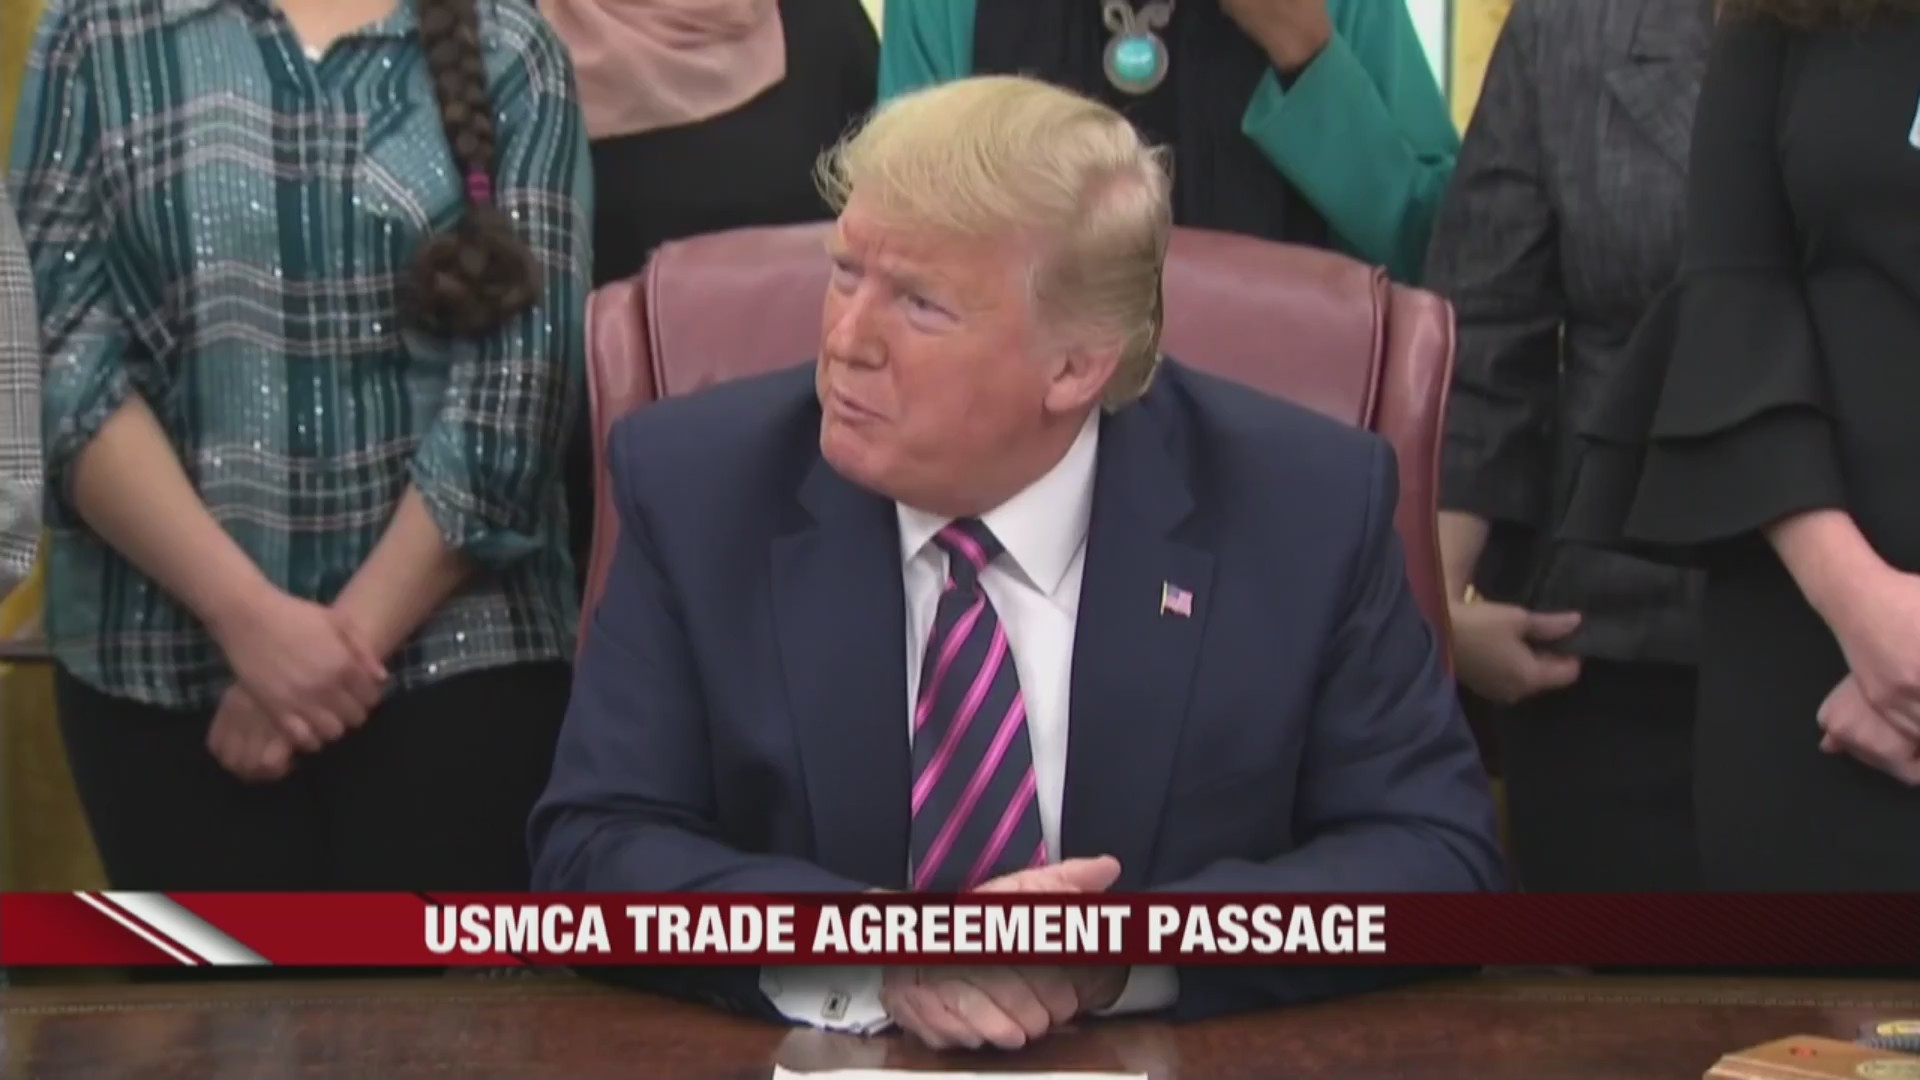 USMCA Trade Agreement passes with largely bipartisan support